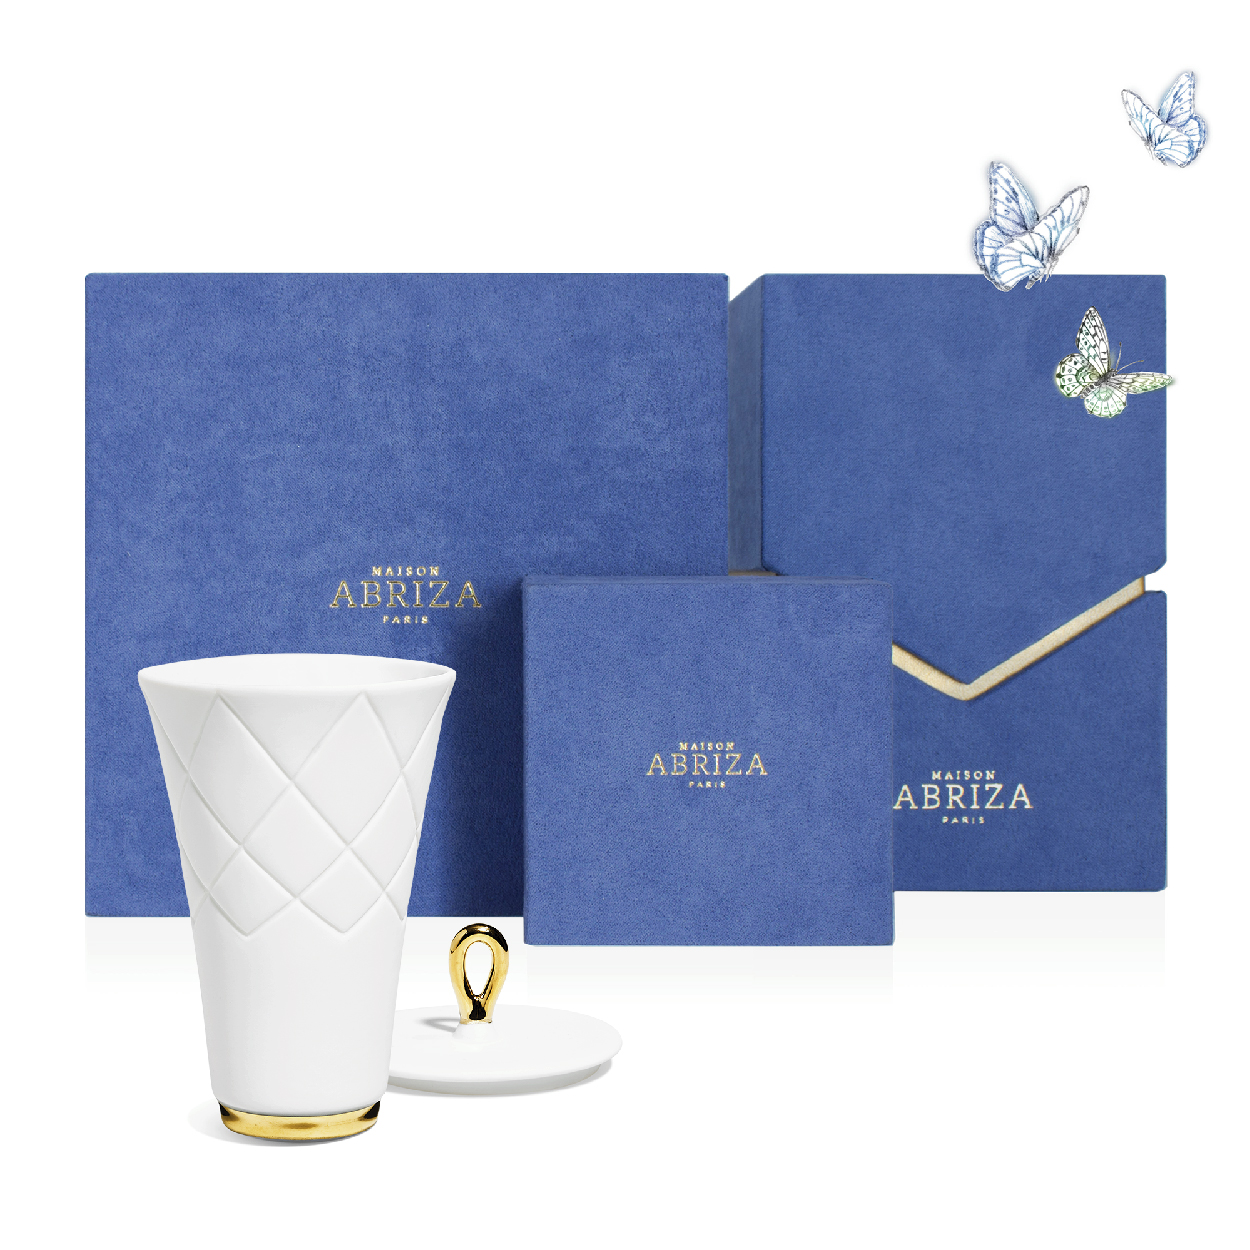 1703-FACTORY-ABRIZA-PACK-05